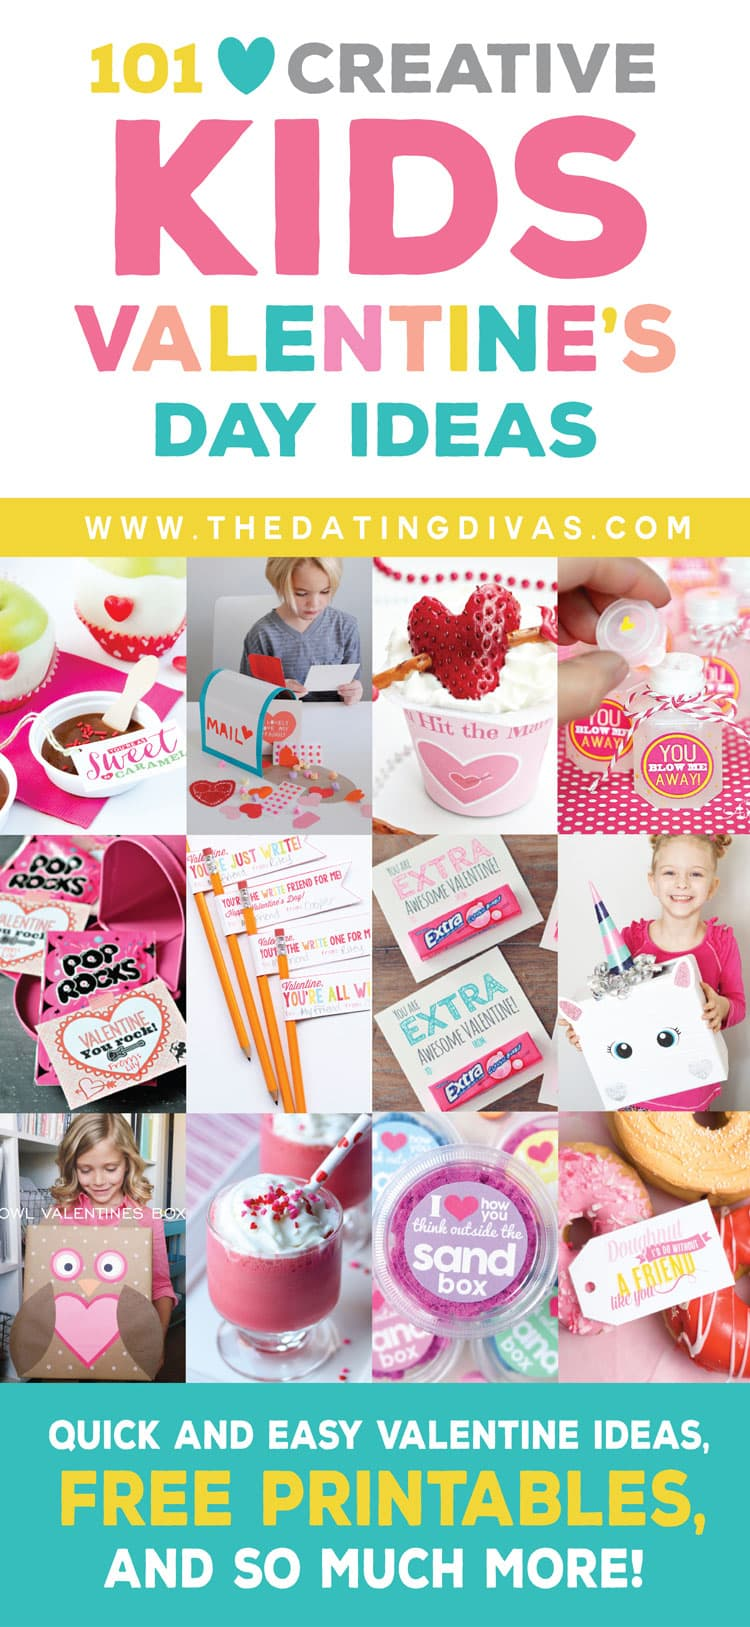 I can't wait to show my littlest loves some love with these Valentine ideas for kids!! So many cute ideas to make the holiday magical! #valentineideasforkids #kidsvalentinesideas